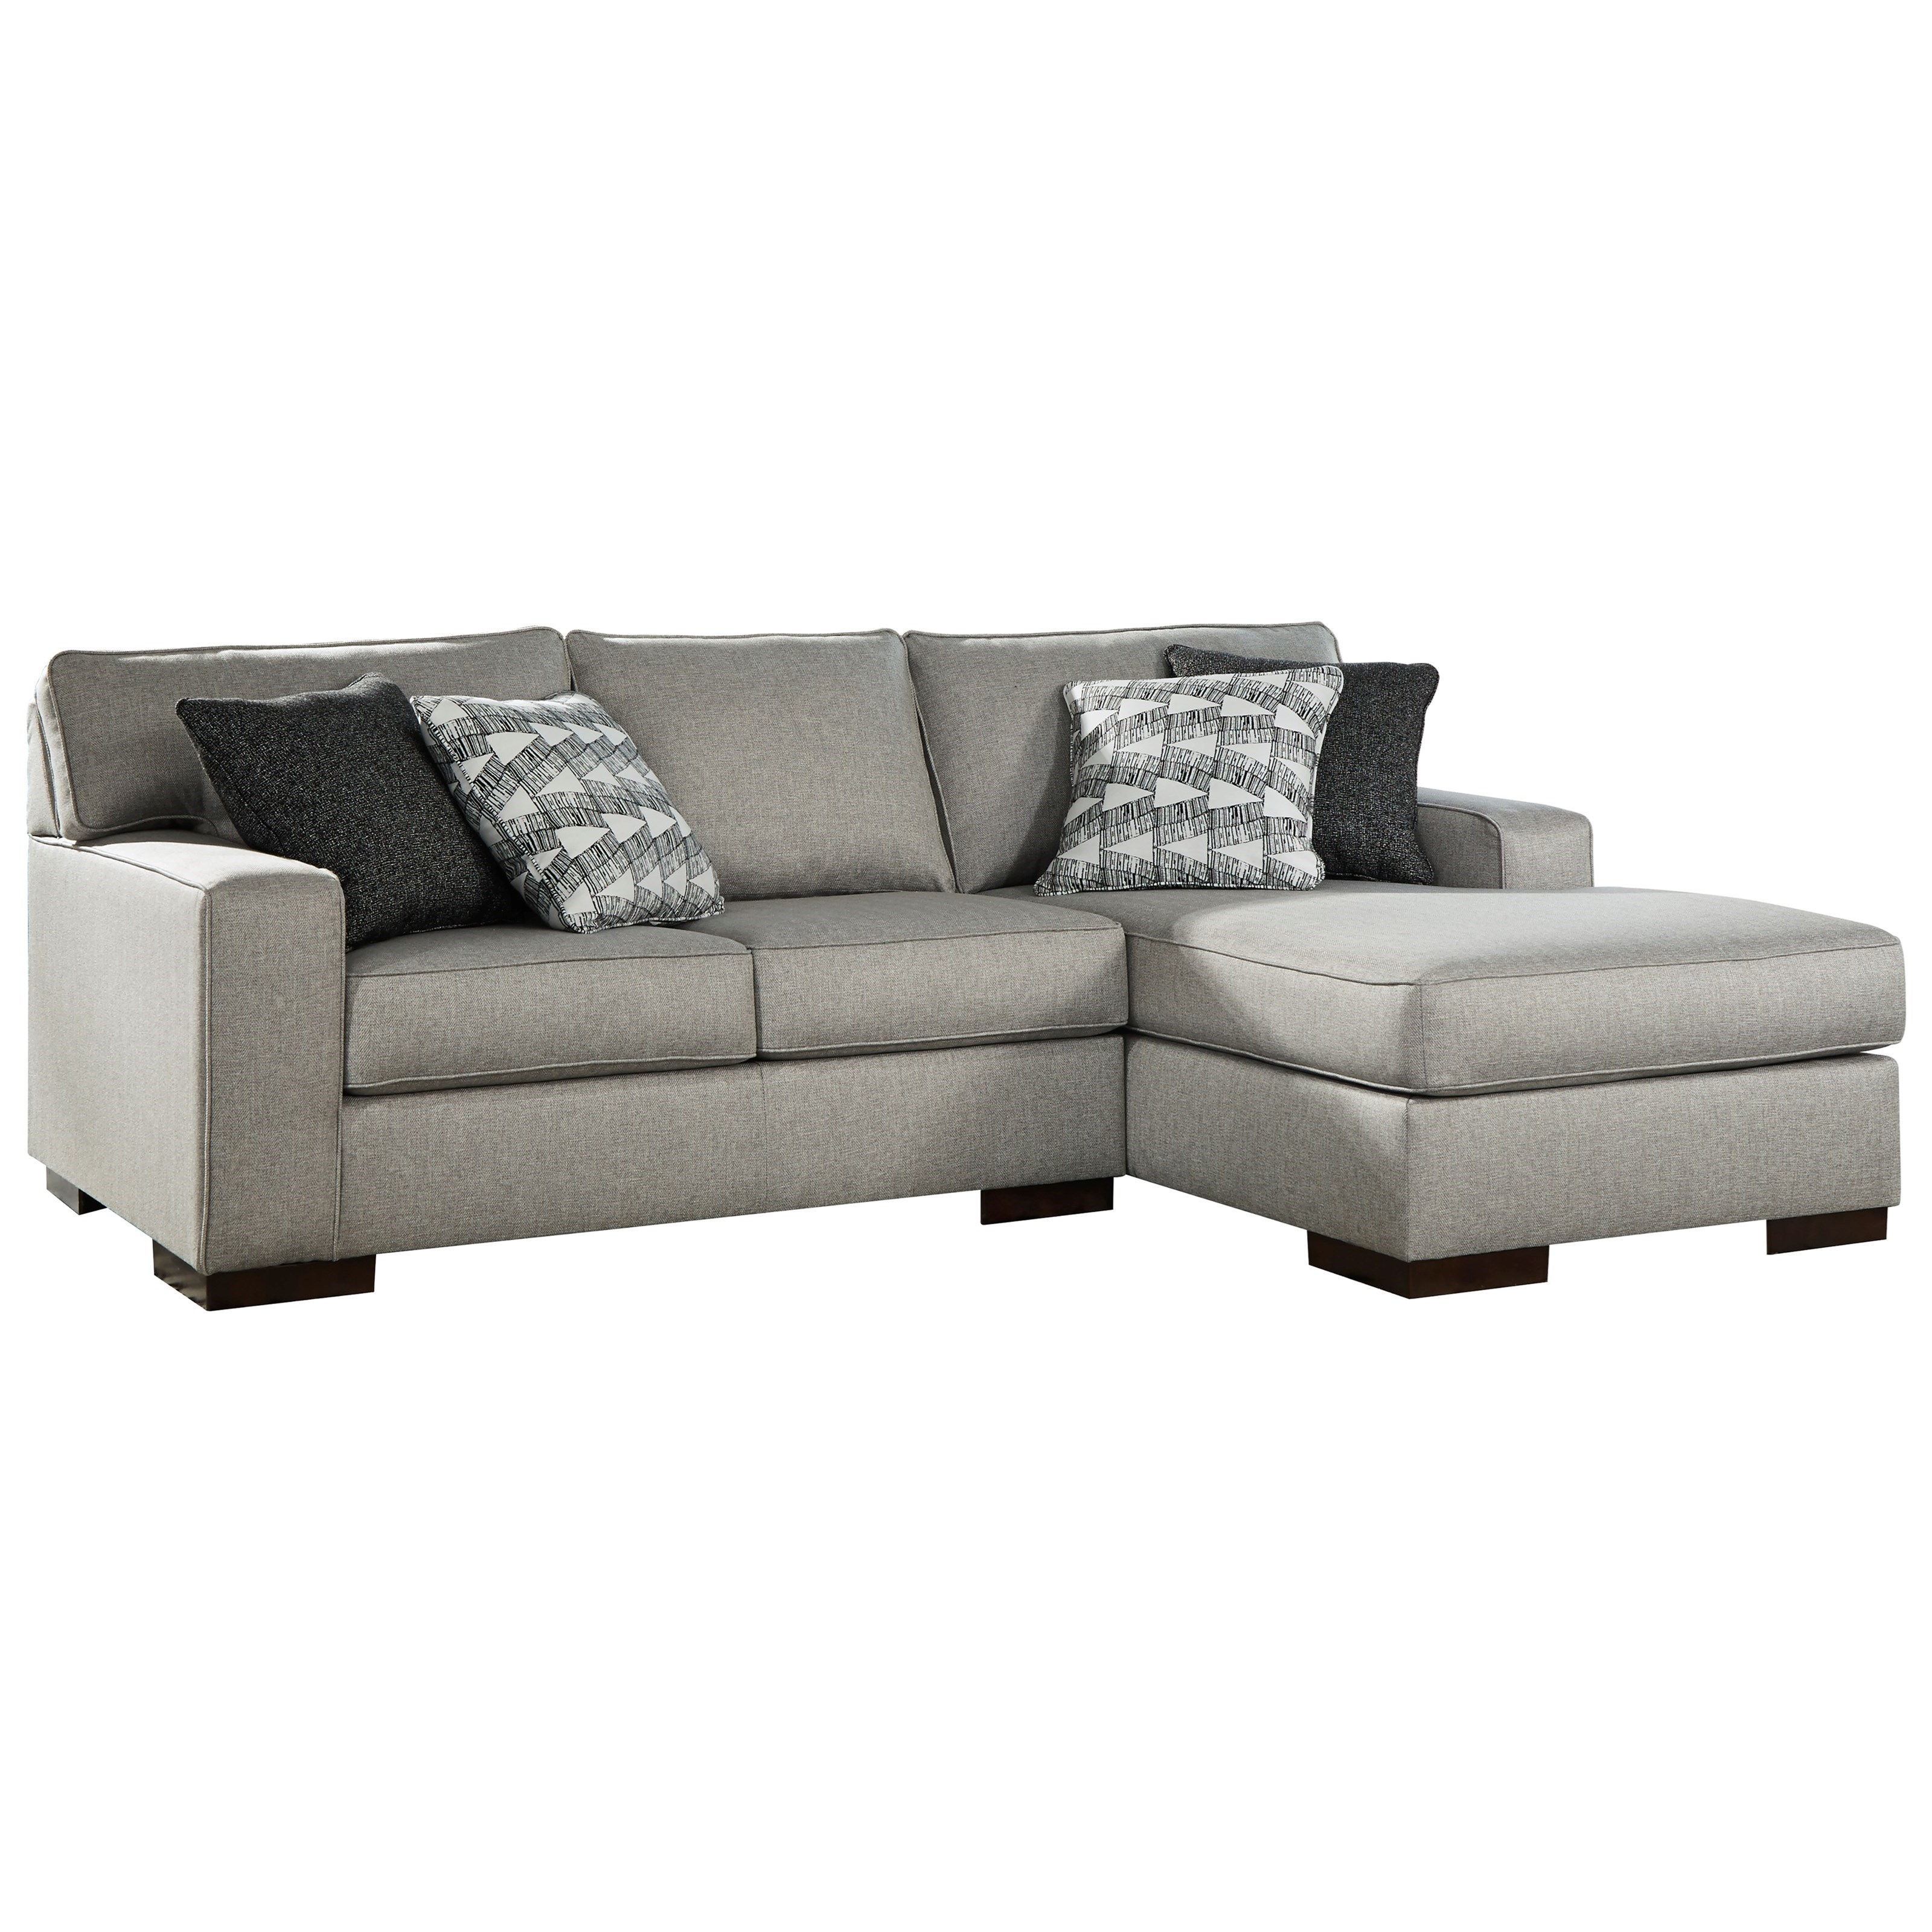 Marsing Nuvella 2-Piece Sectional with Chaise by Benchcraft at Value City Furniture